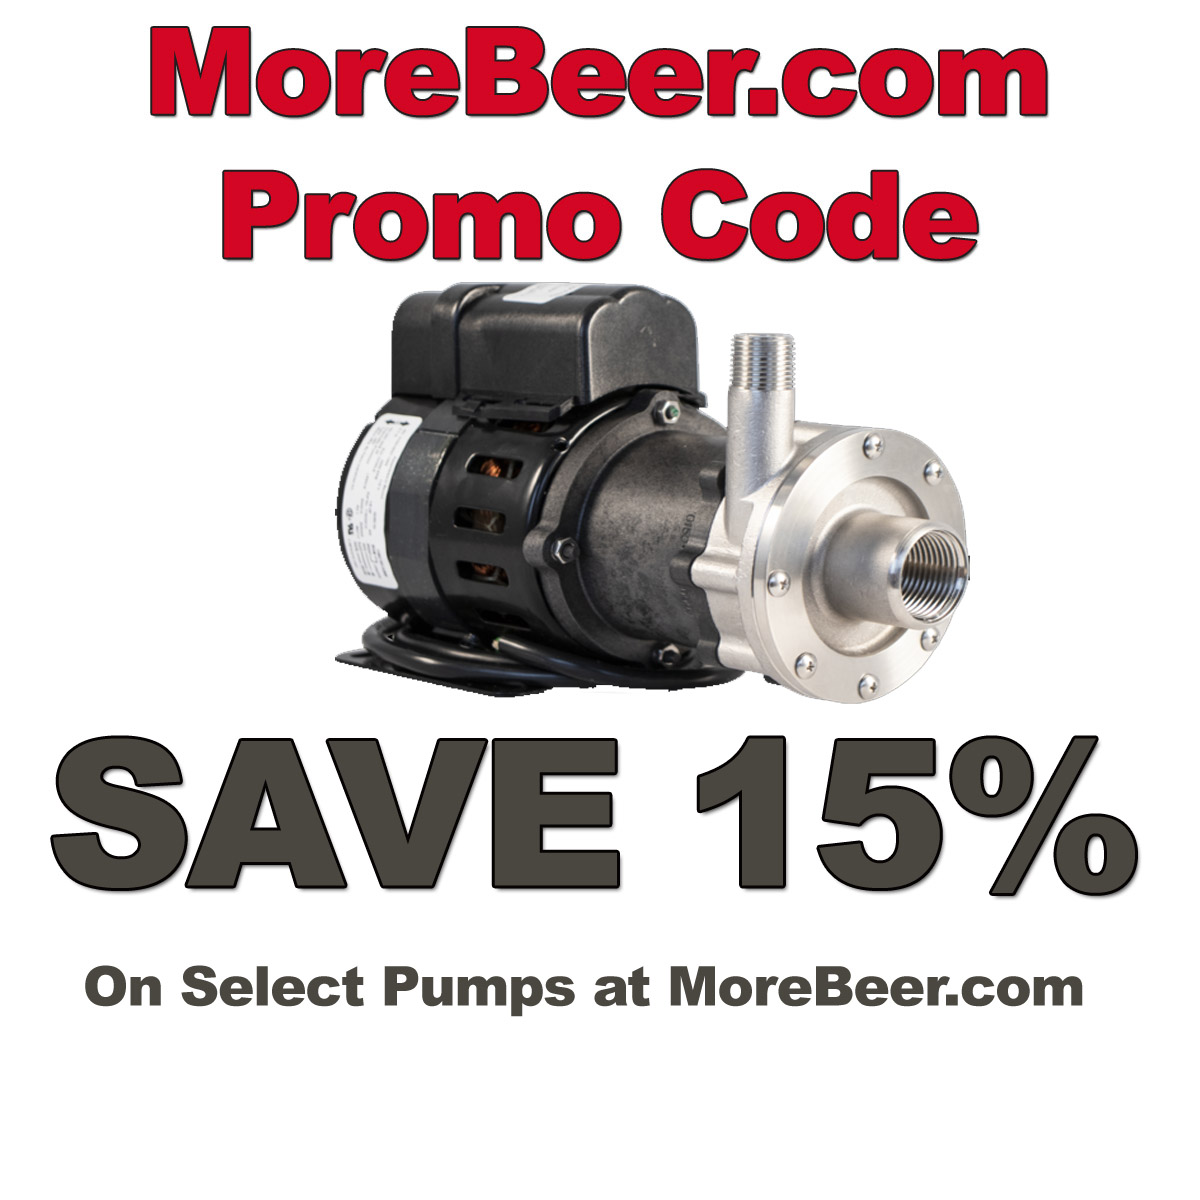 Home Wine Making Coupon Codes for Save 15% On Home Brewing Pumps with this MoreBeer.com Promo Code Coupon Code